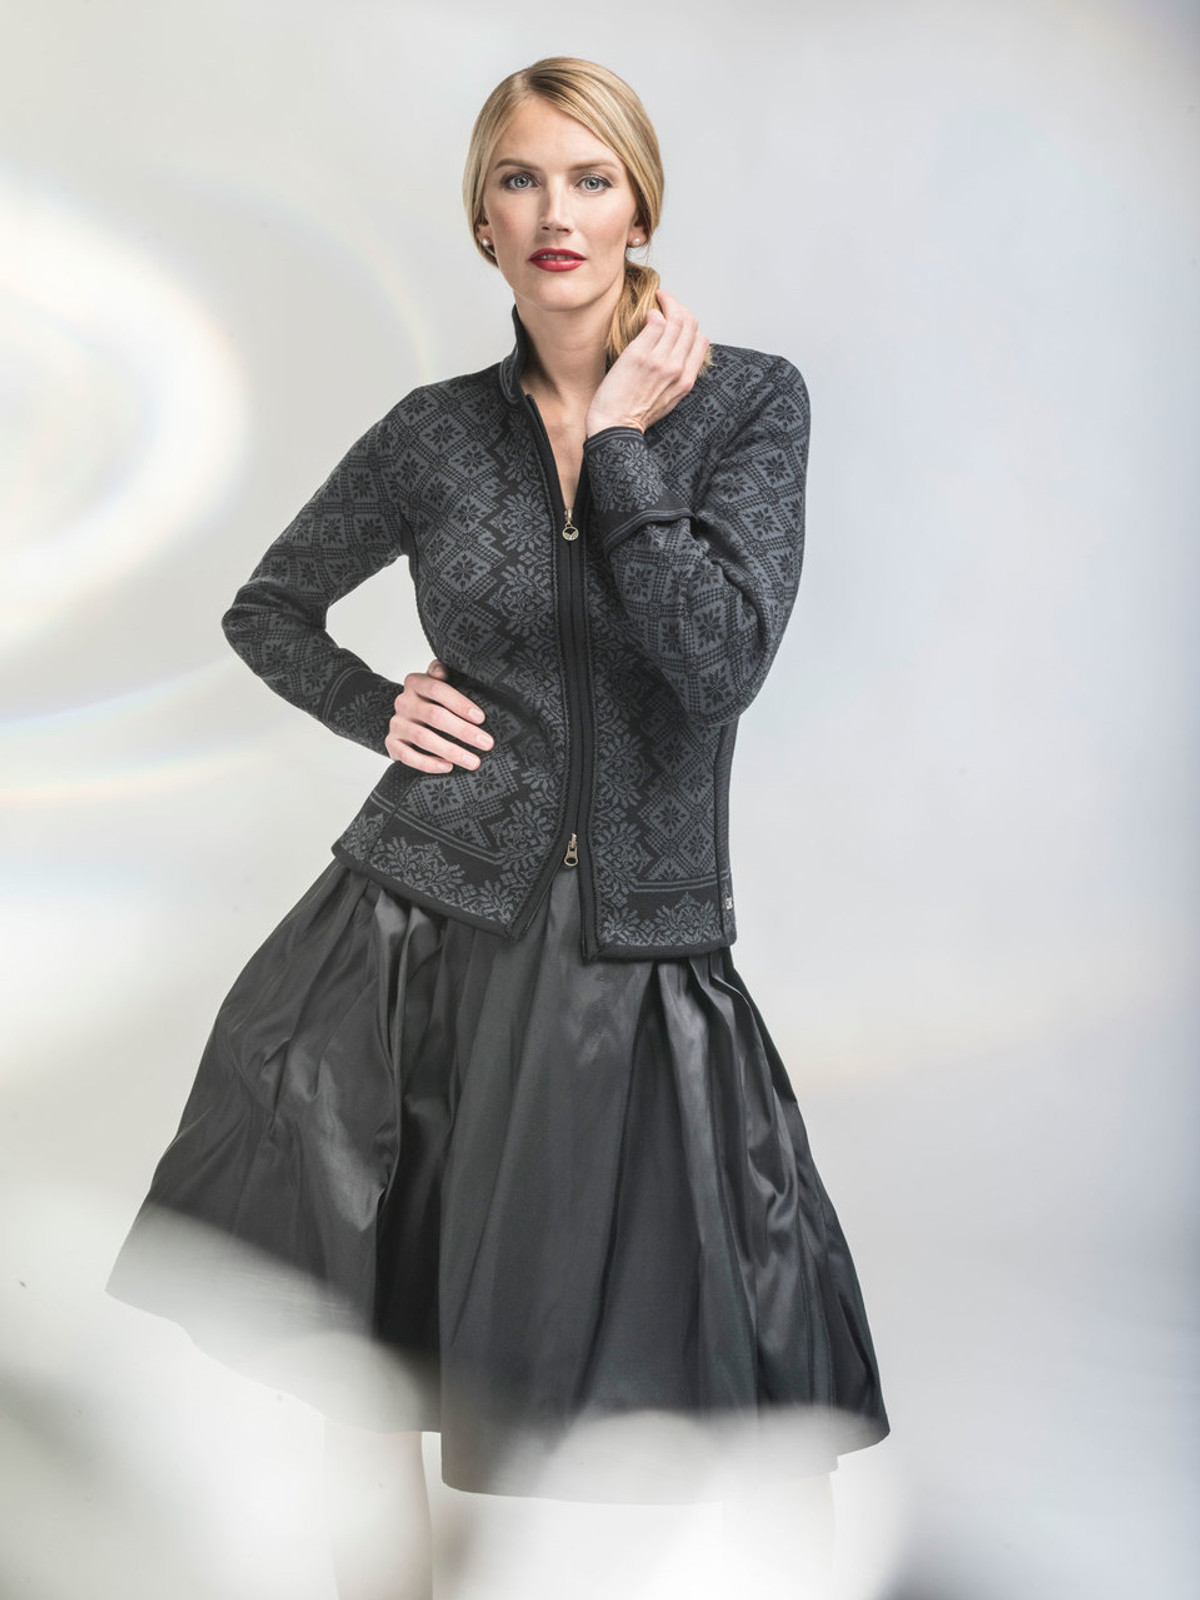 Woman wearing Dale of Norway's Christiania ladies cardigan in Black/Dark Grey, 81951-K, on sale at the Nordic Shop.